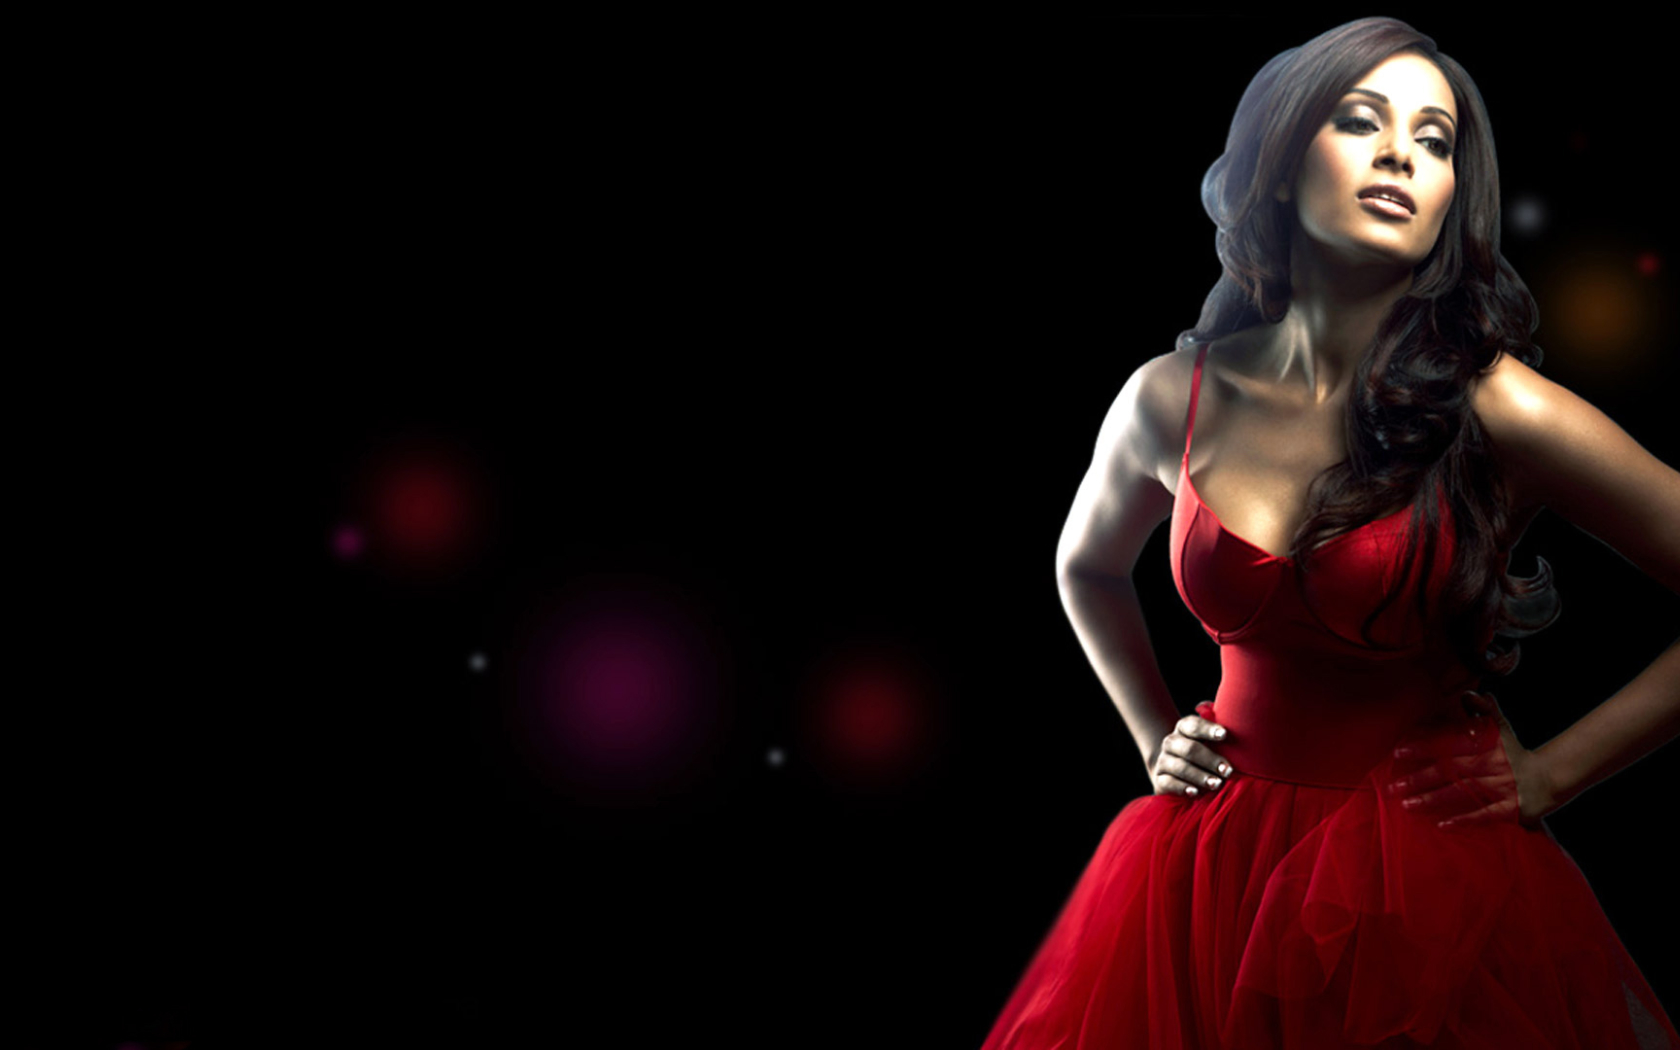 download bipasha basu in red dress photoshoot 1680x1050 resolution